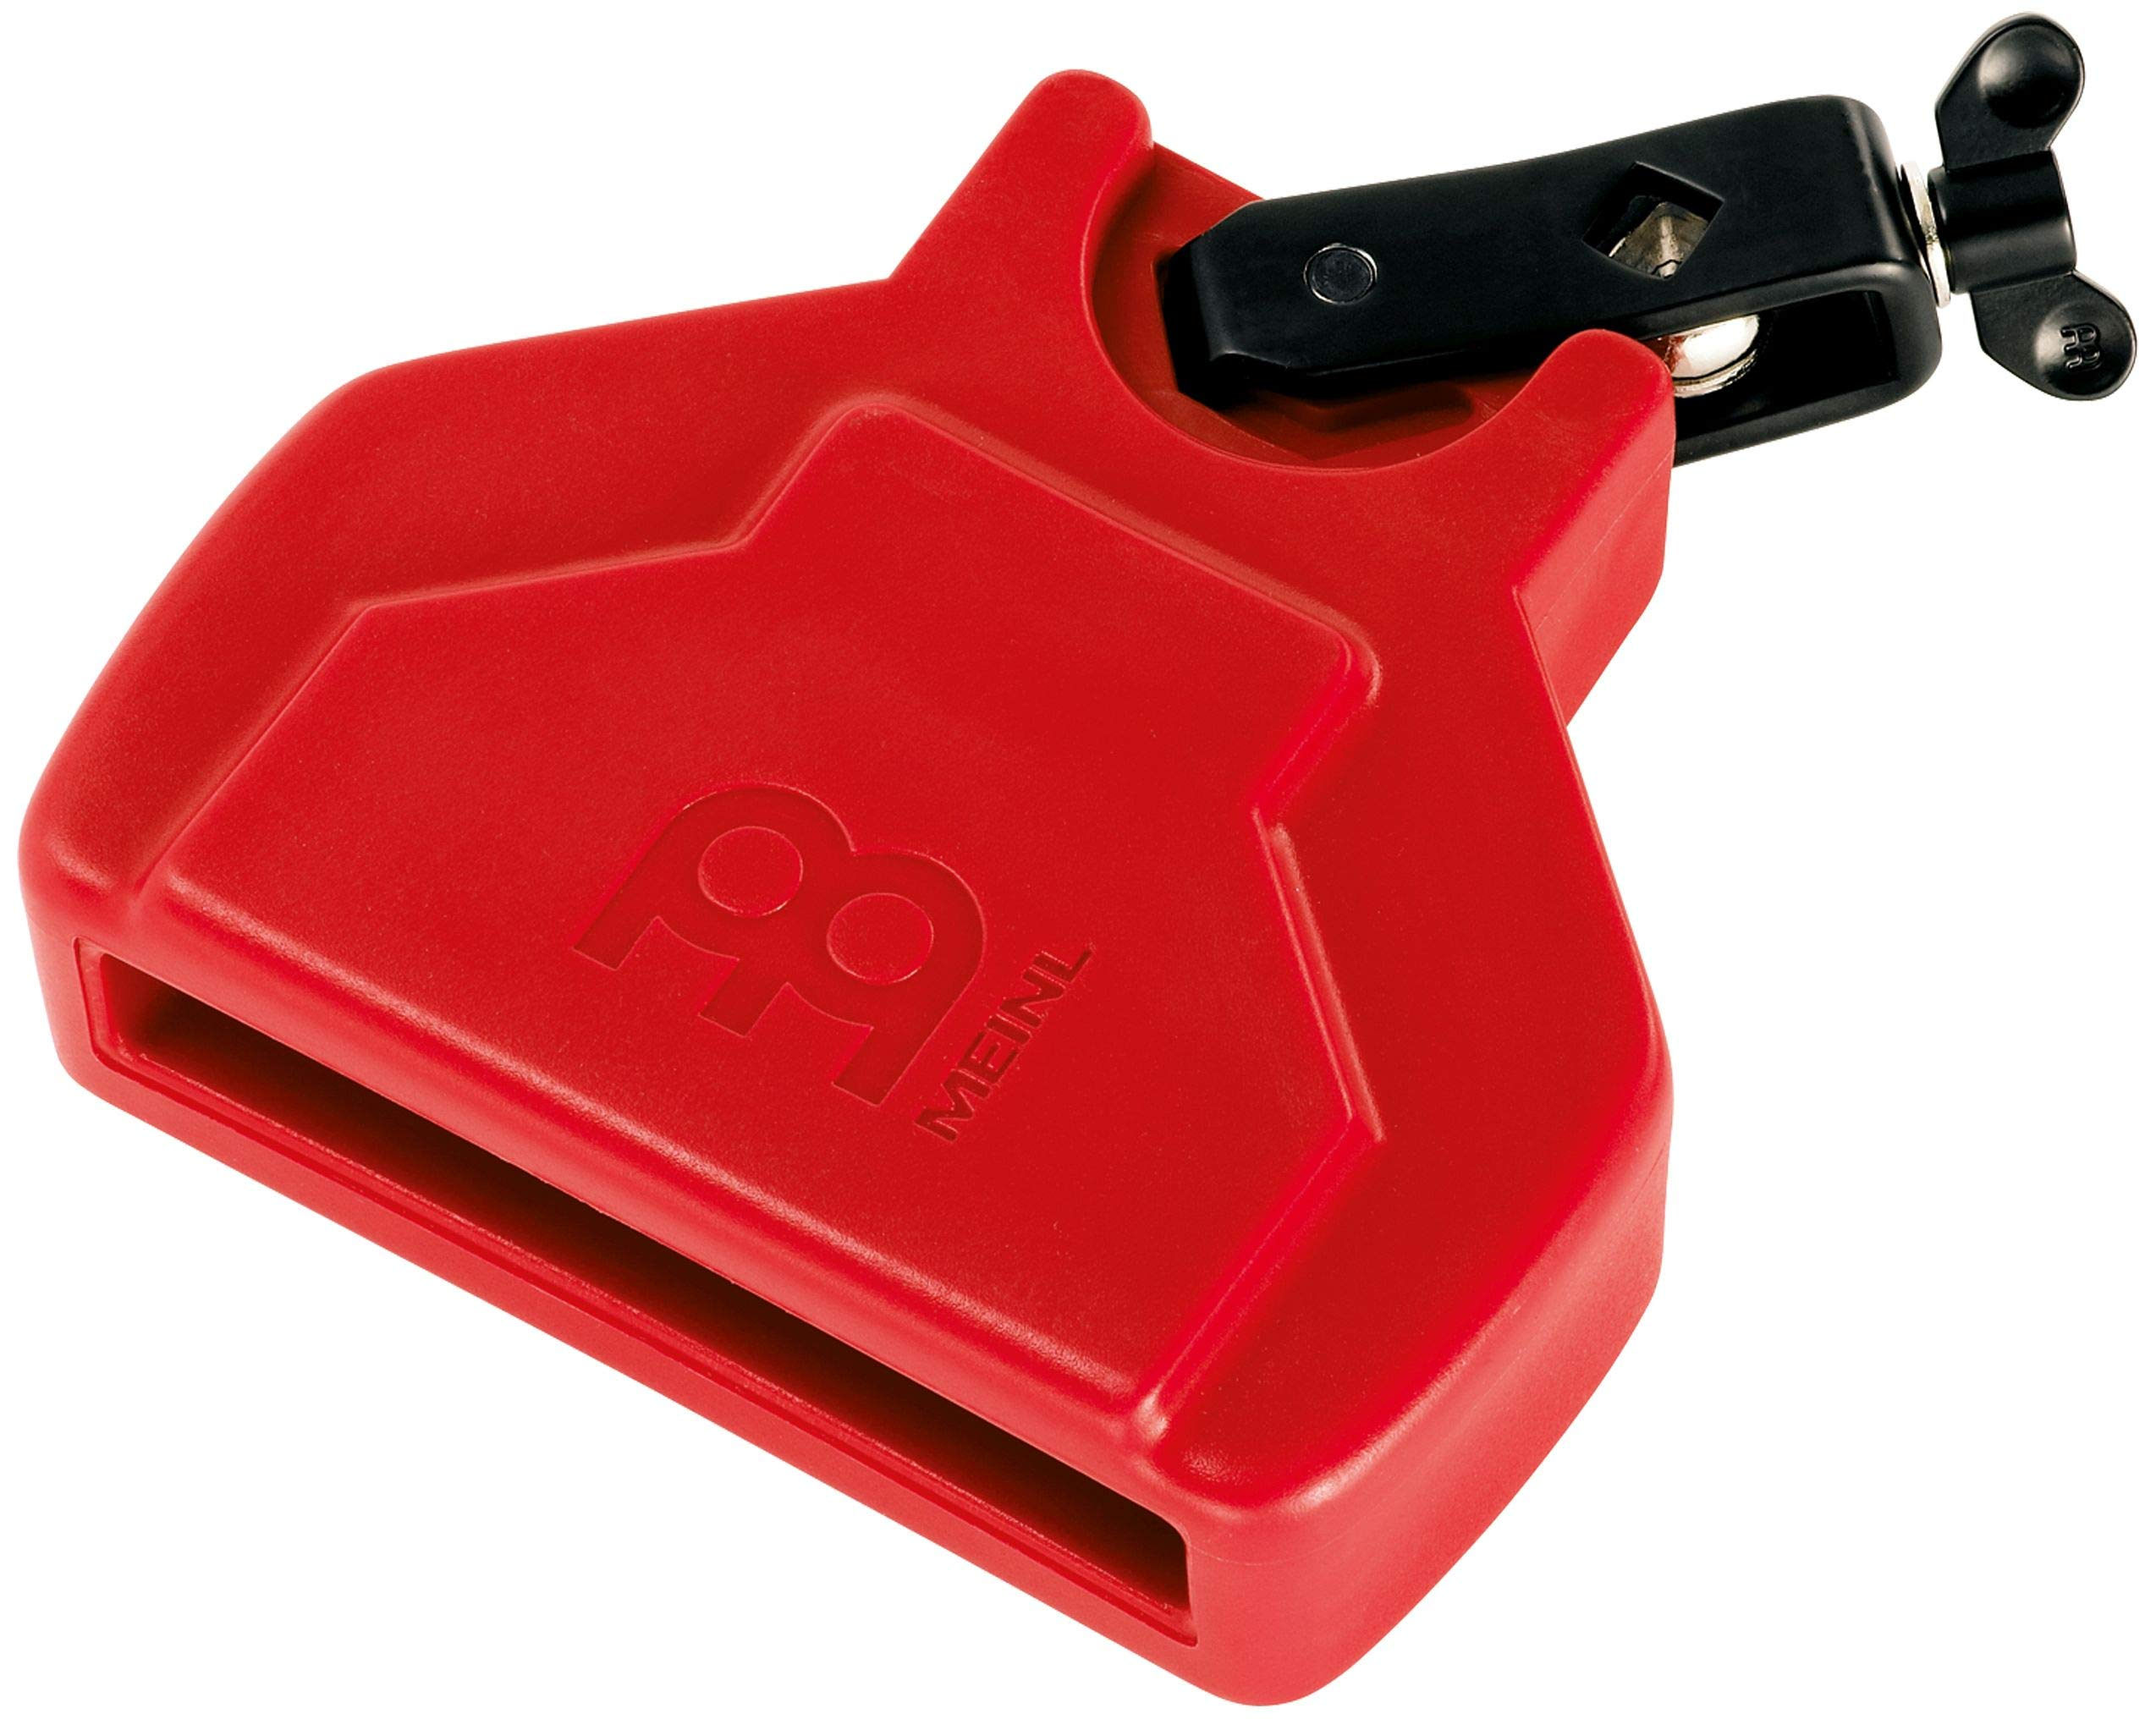 Meinl Percussion MPE2R Low Pitch Percussion Block, Red